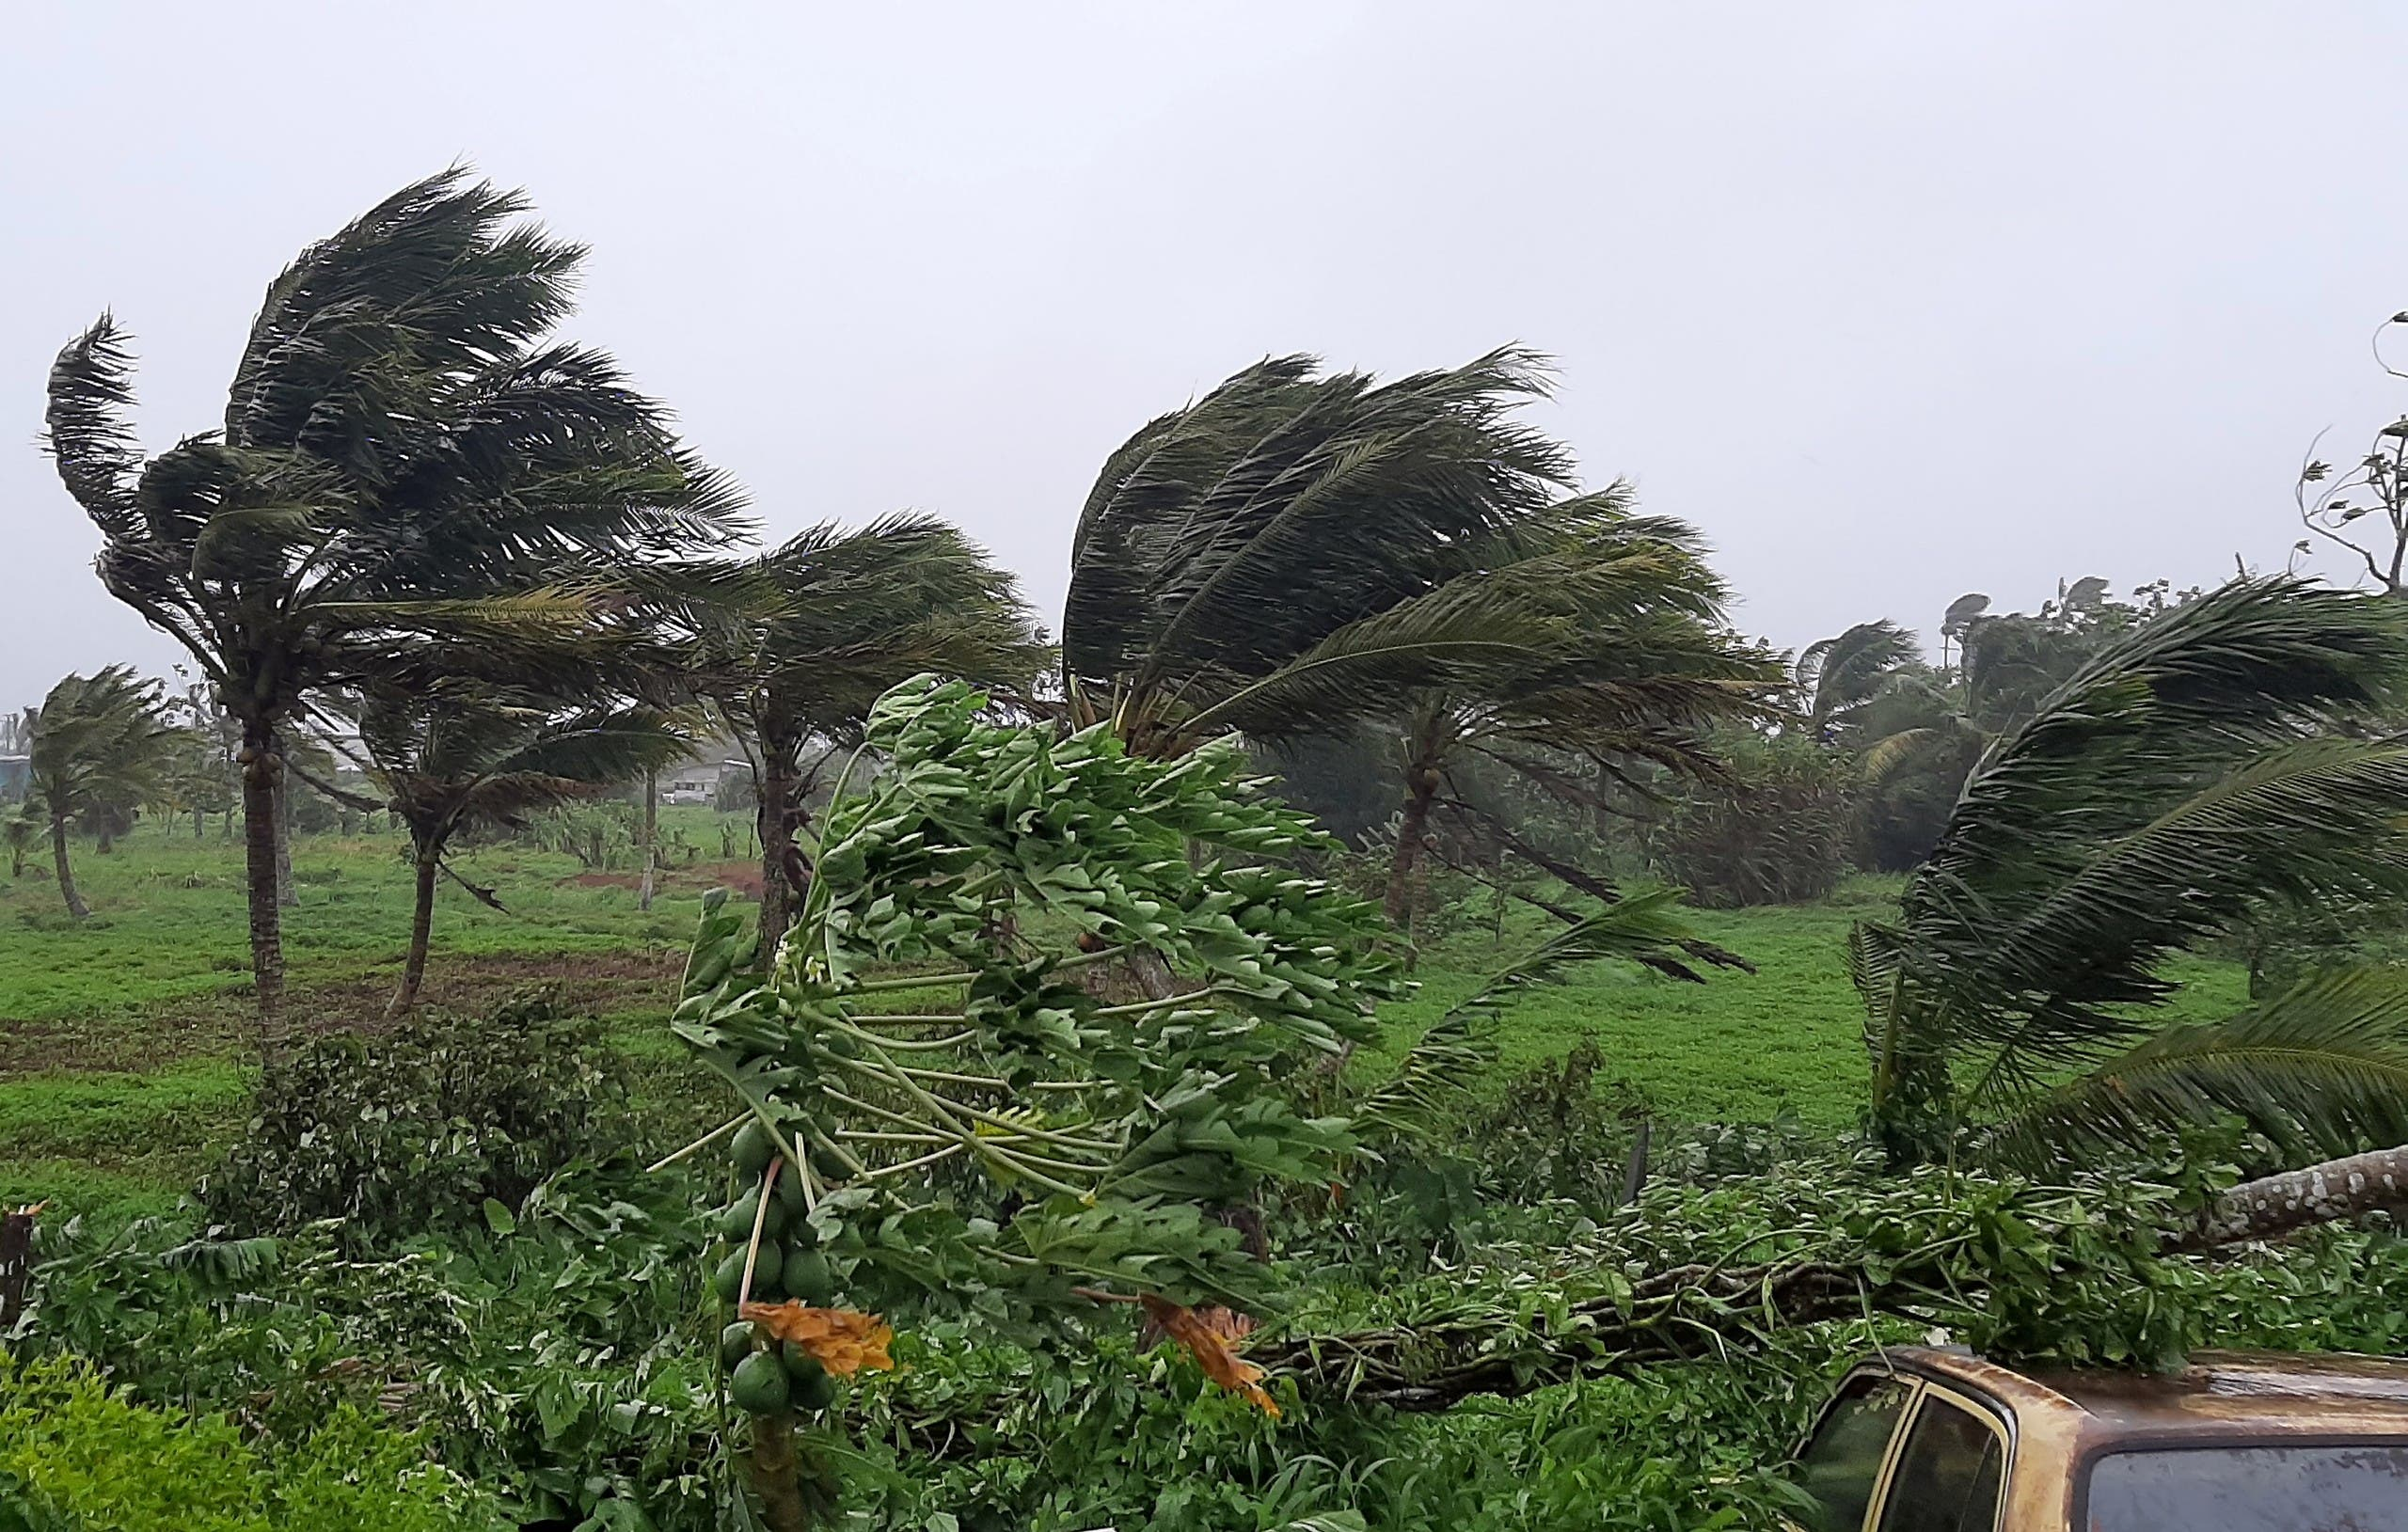 Strong winds uproot the trees from winds caused by Cyclone Ana, a category two storm, in the village of Sawani, north of Fiji's capital city of Suva, on January 31, 2021. (File photo: AFP)